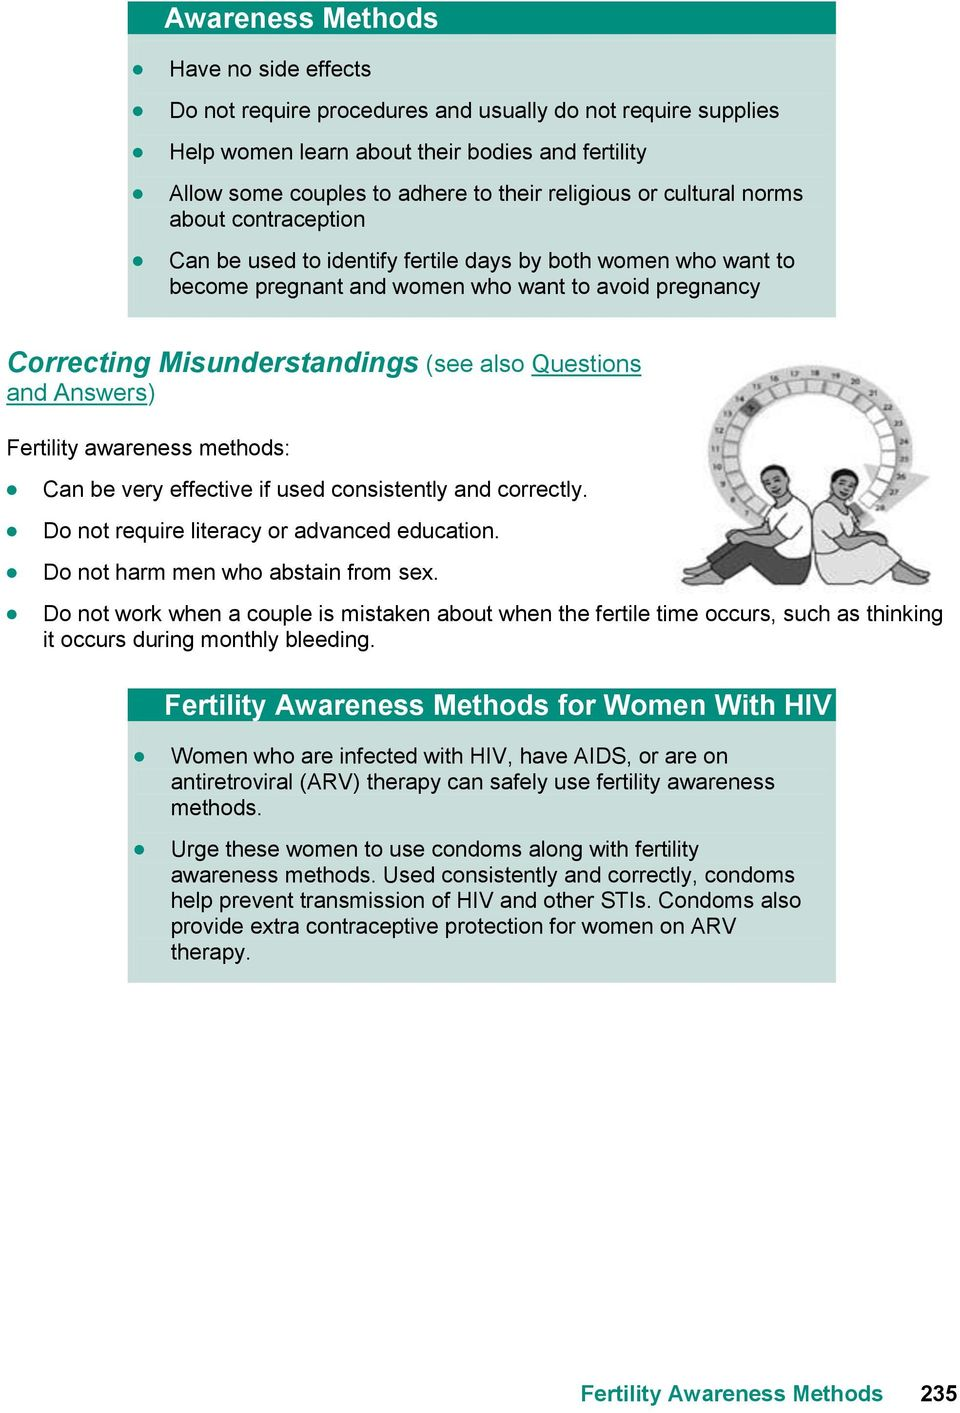 Questions and Answers) Fertility awareness methods: Can be very effective if used consistently and correctly. Do not require literacy or advanced education. Do not harm men who abstain from sex.